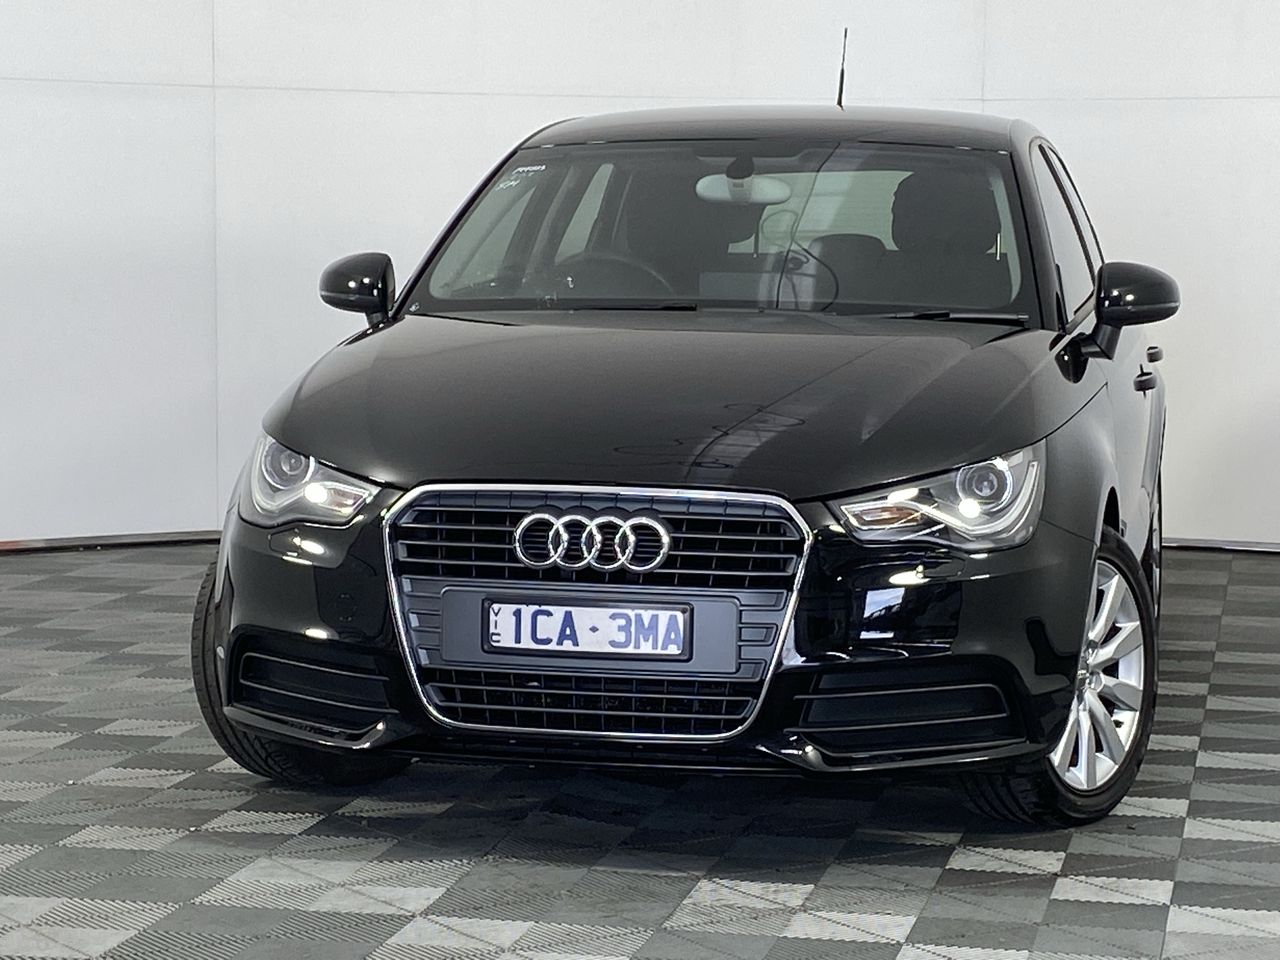 2014 Audi A1 1.4 TFSI ATTRACTION 8X Automatic Hatchback